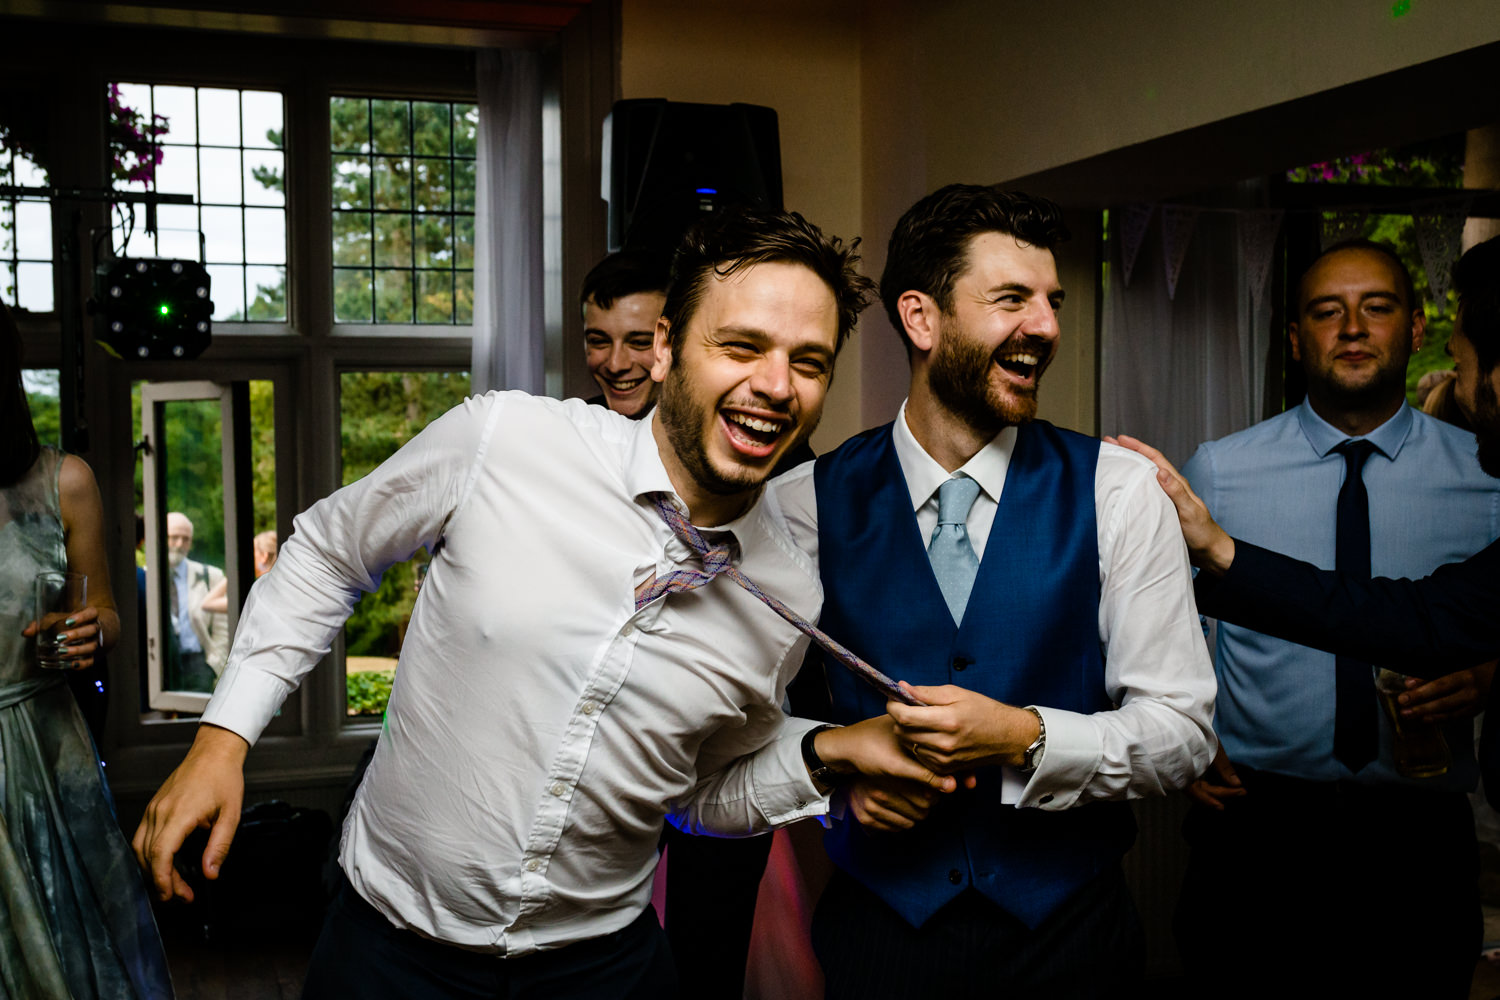 Dance floor action Whirlowbrook Hall Sheffield wedding photographs